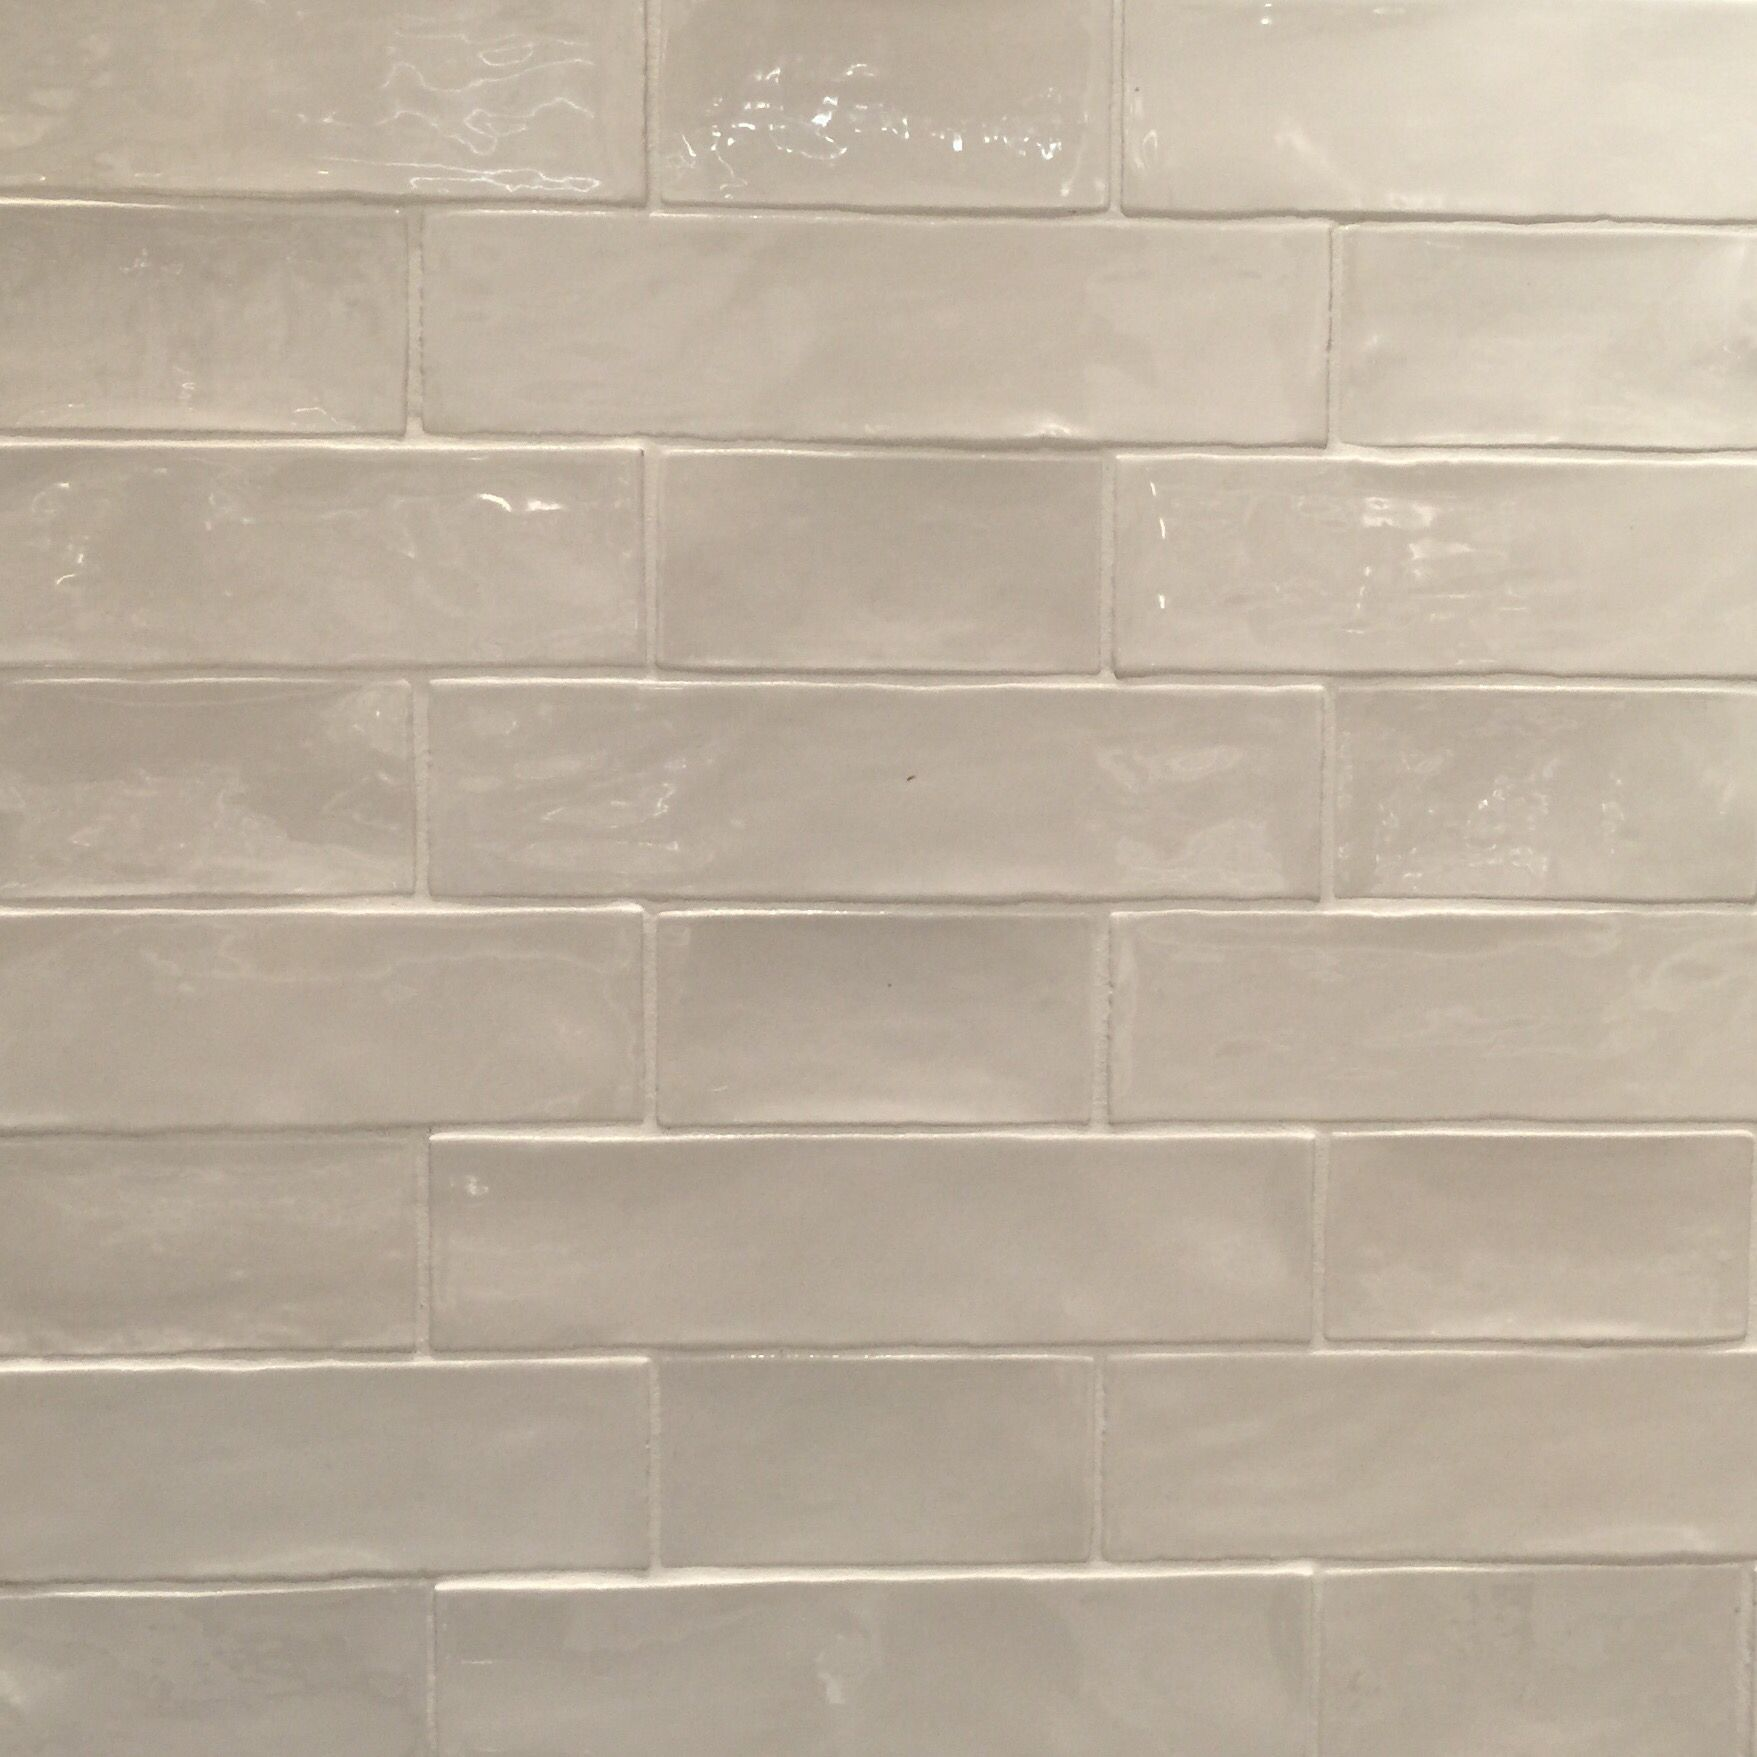 handmade look subway tile handmade subway tile in alternating 3x6 and 3x12 pattern 5012